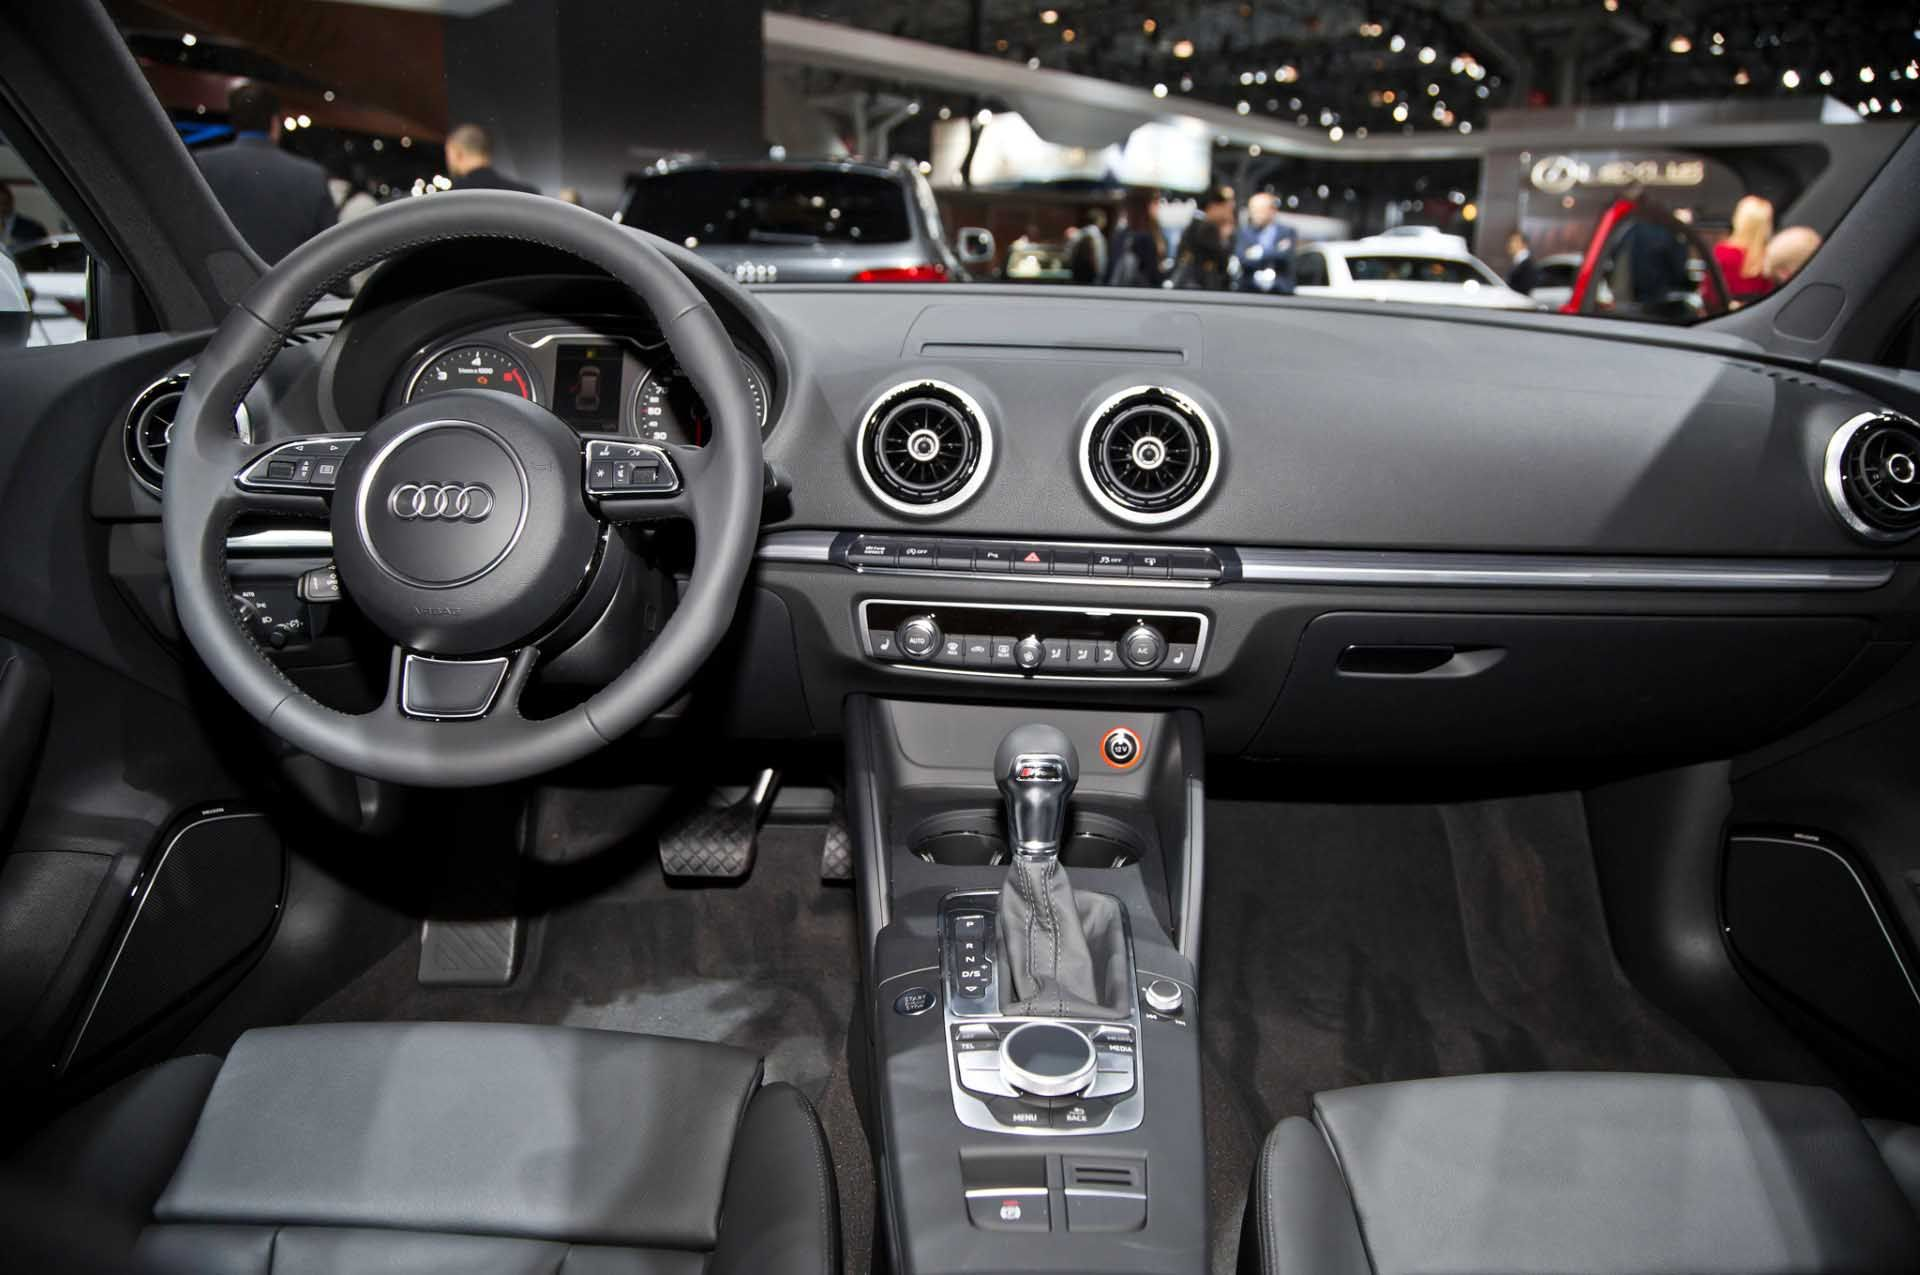 Download Splendid Audi A3 Sportback Interior Full Hd Wallpaper Full Size 116